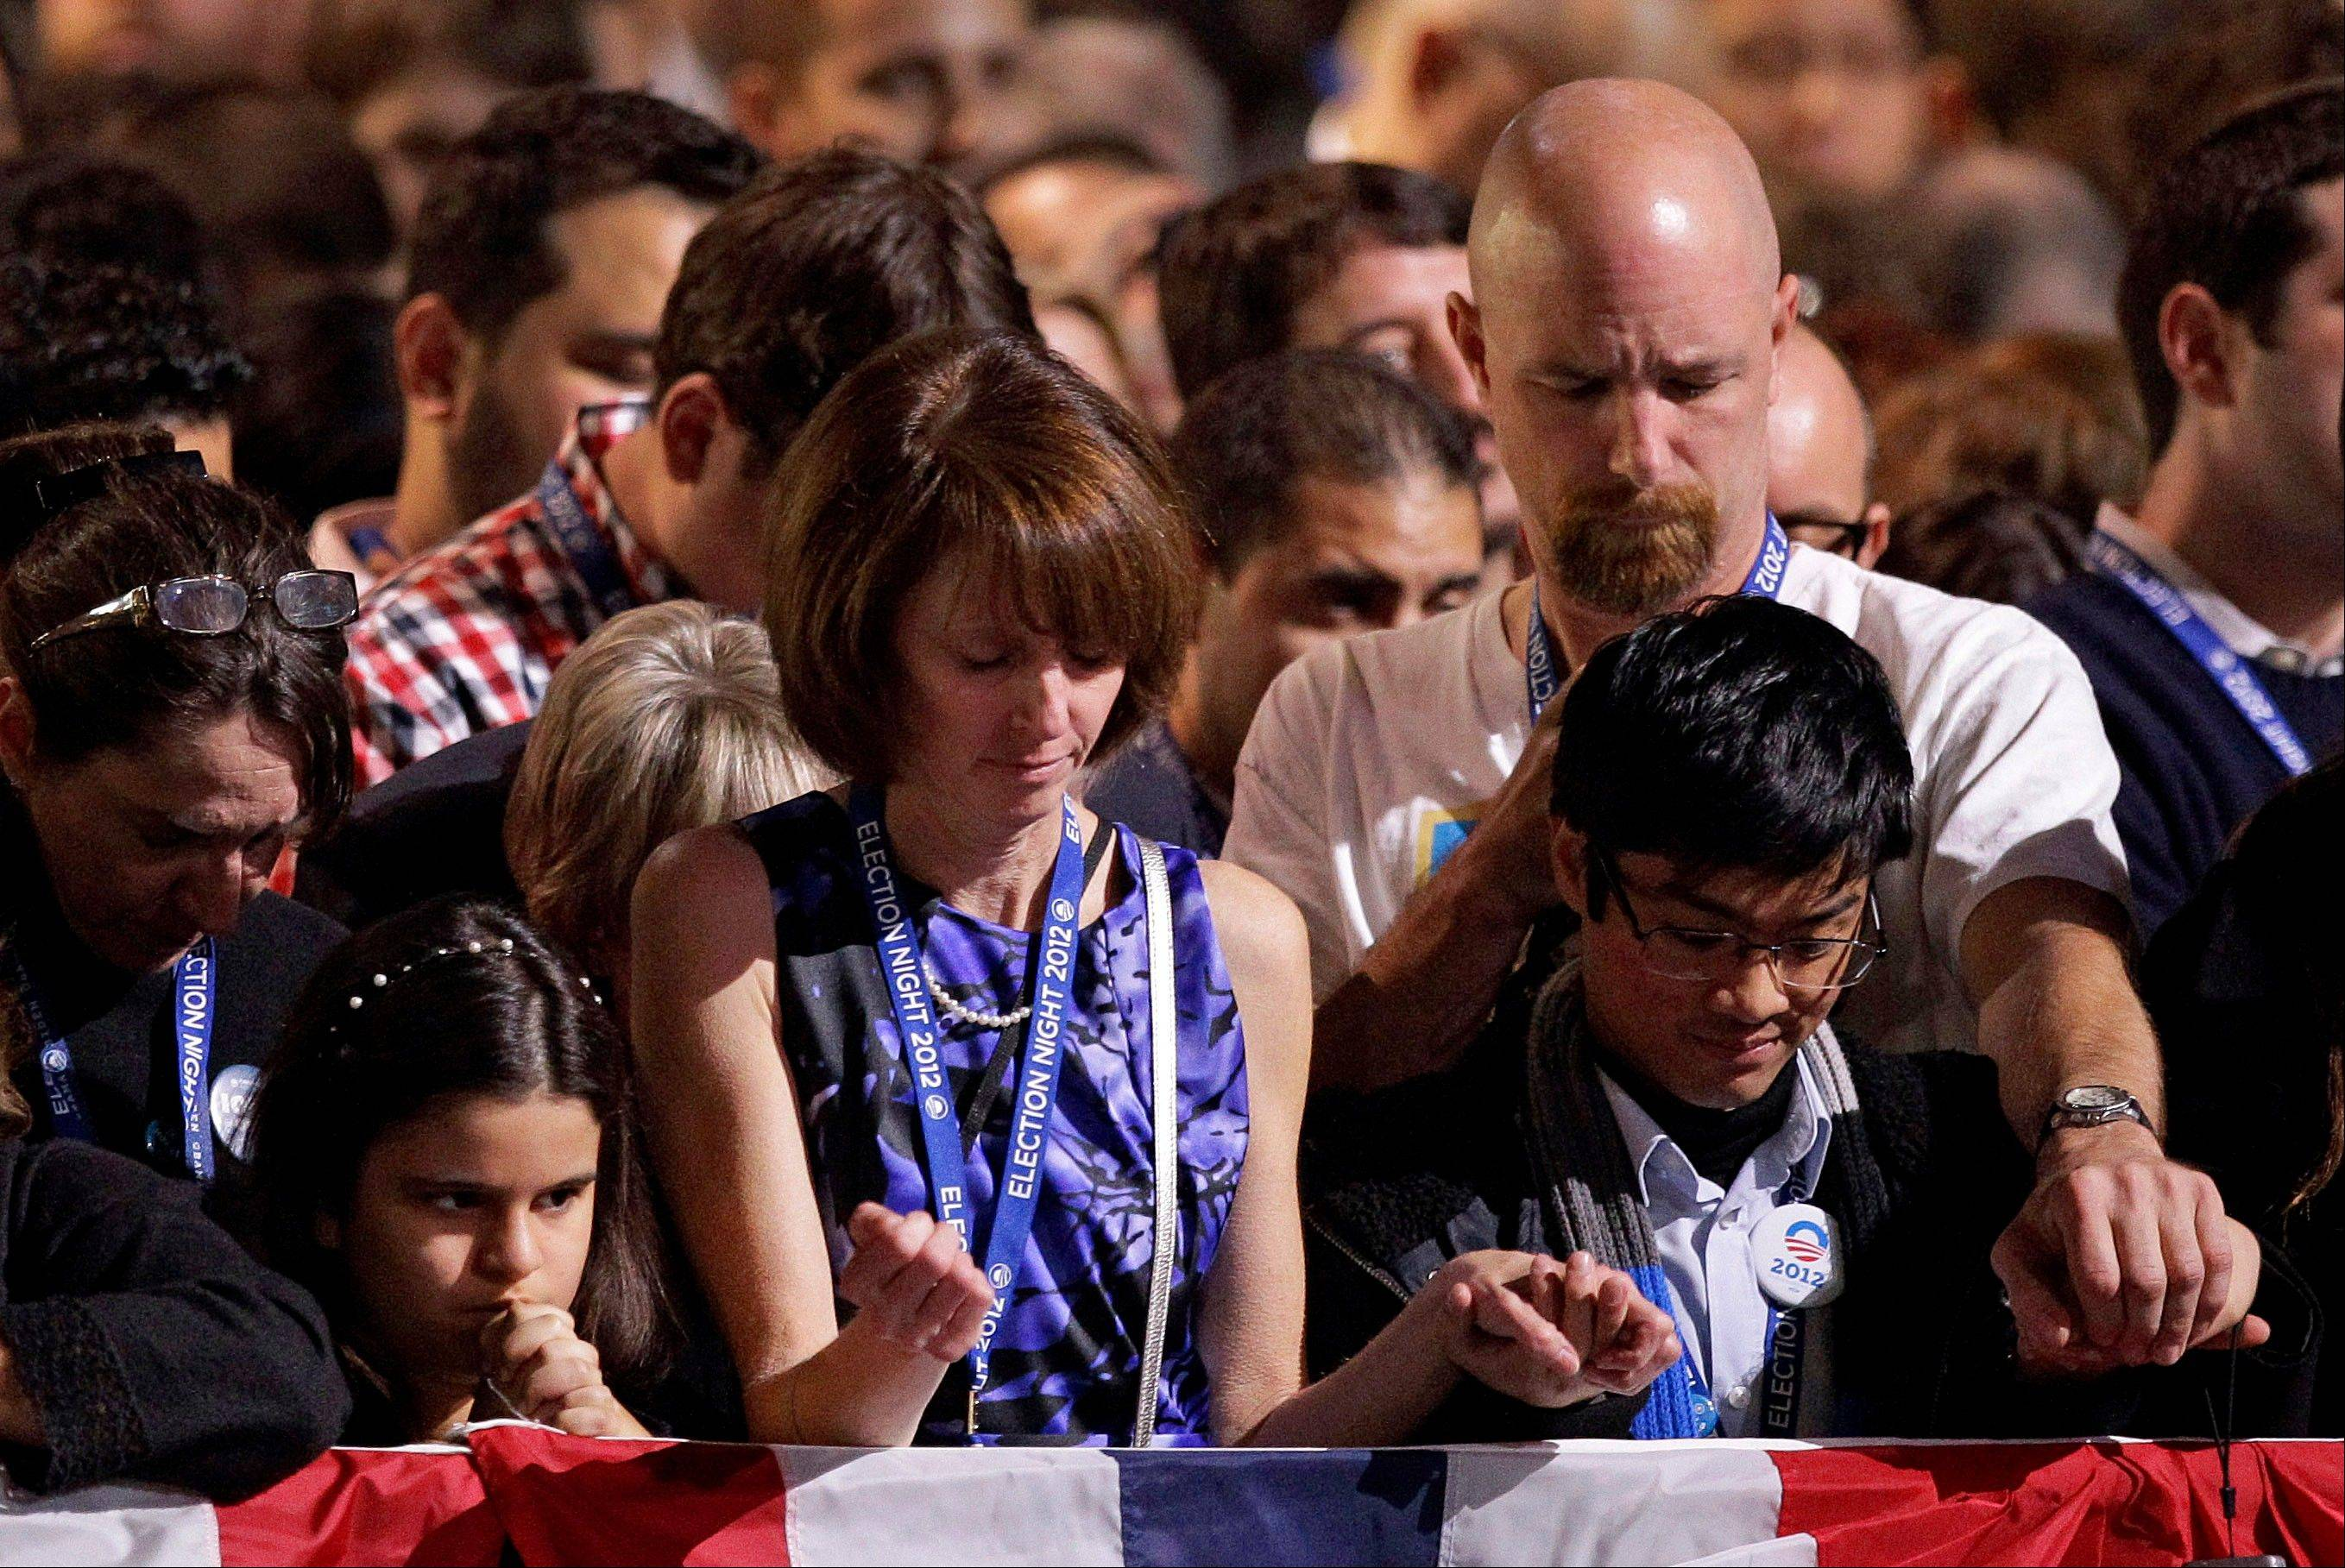 Supporters pray during the invocation at the election night party for President Barack Obama Tuesday, Nov. 6, 2012, in Chicago.